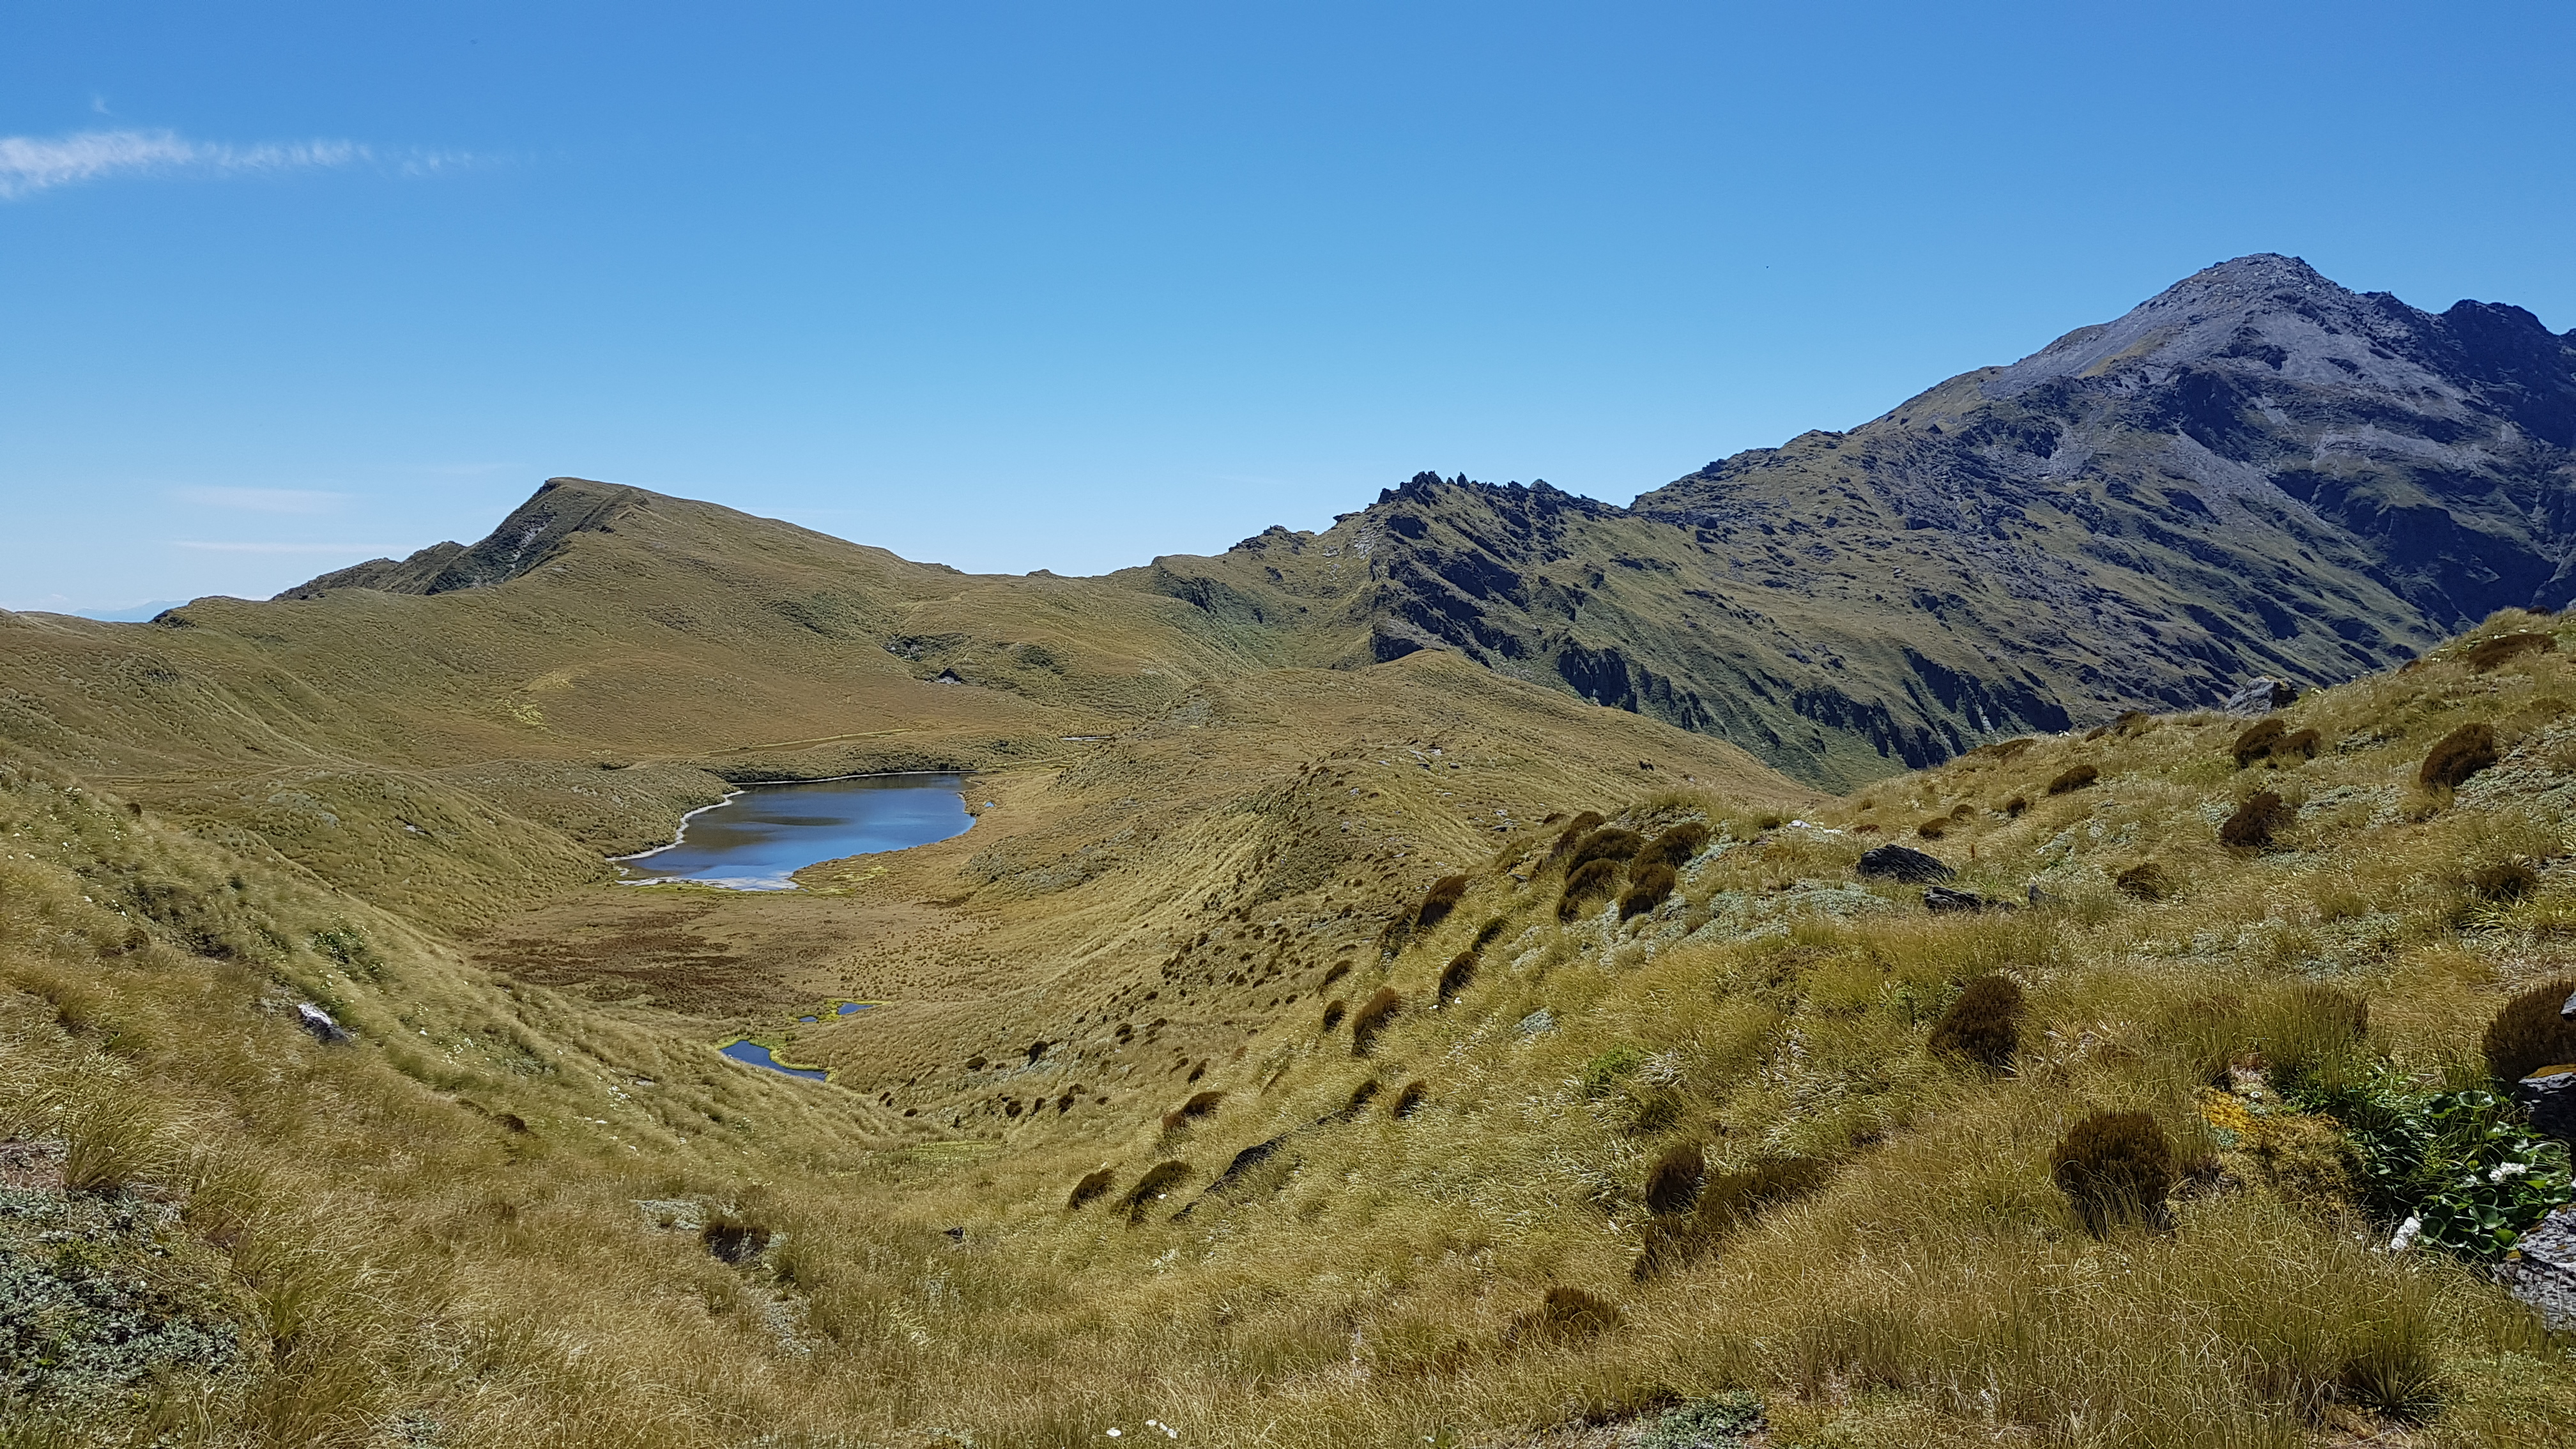 From South of the tarns